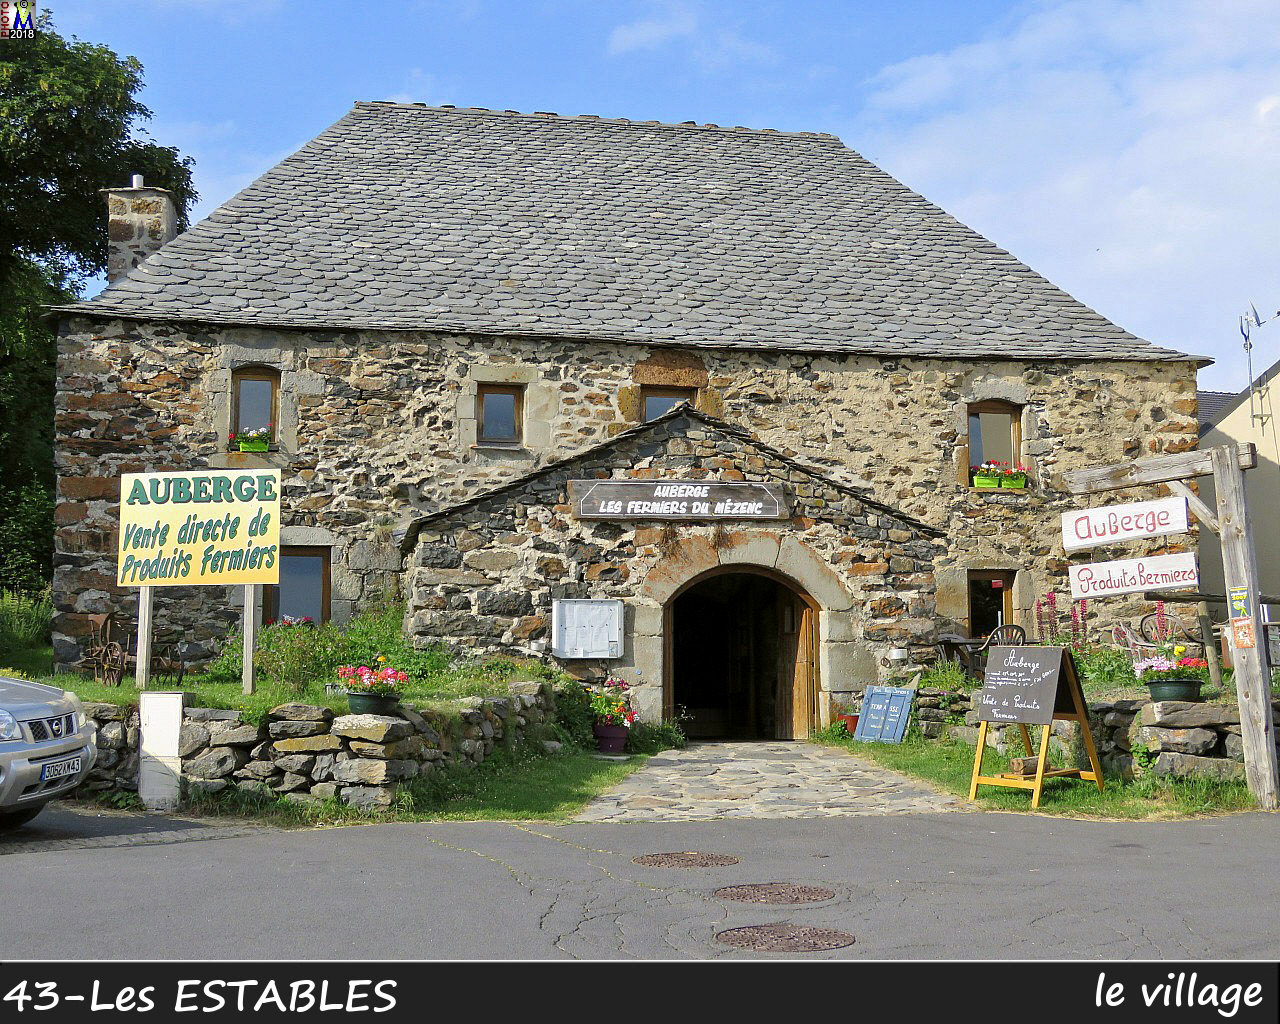 43LesESTABLES_village_112.jpg